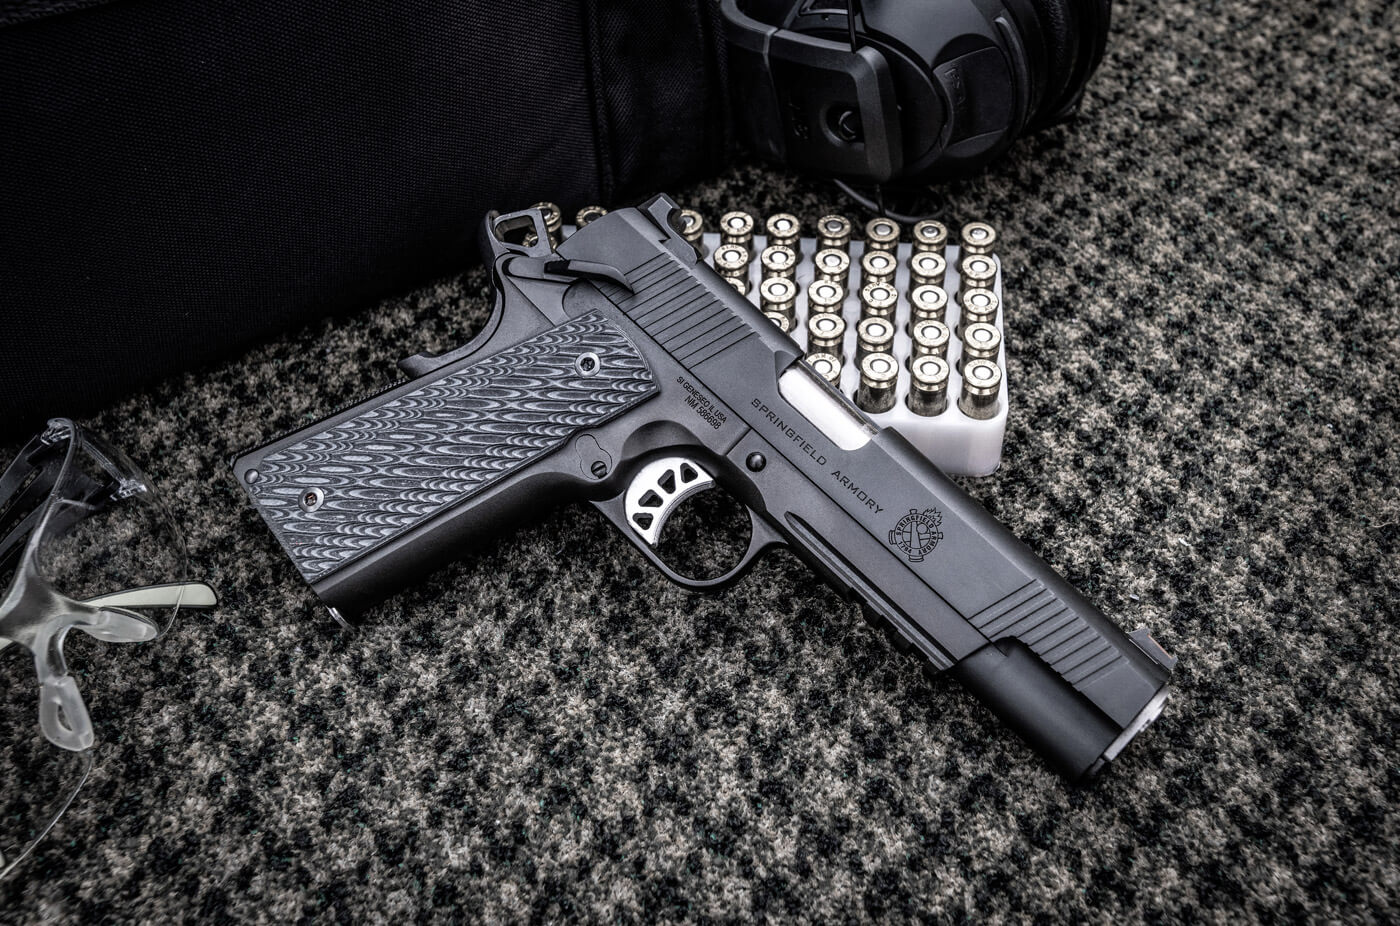 Springfield Armory 1911 pistol chambered in 10mm Auto